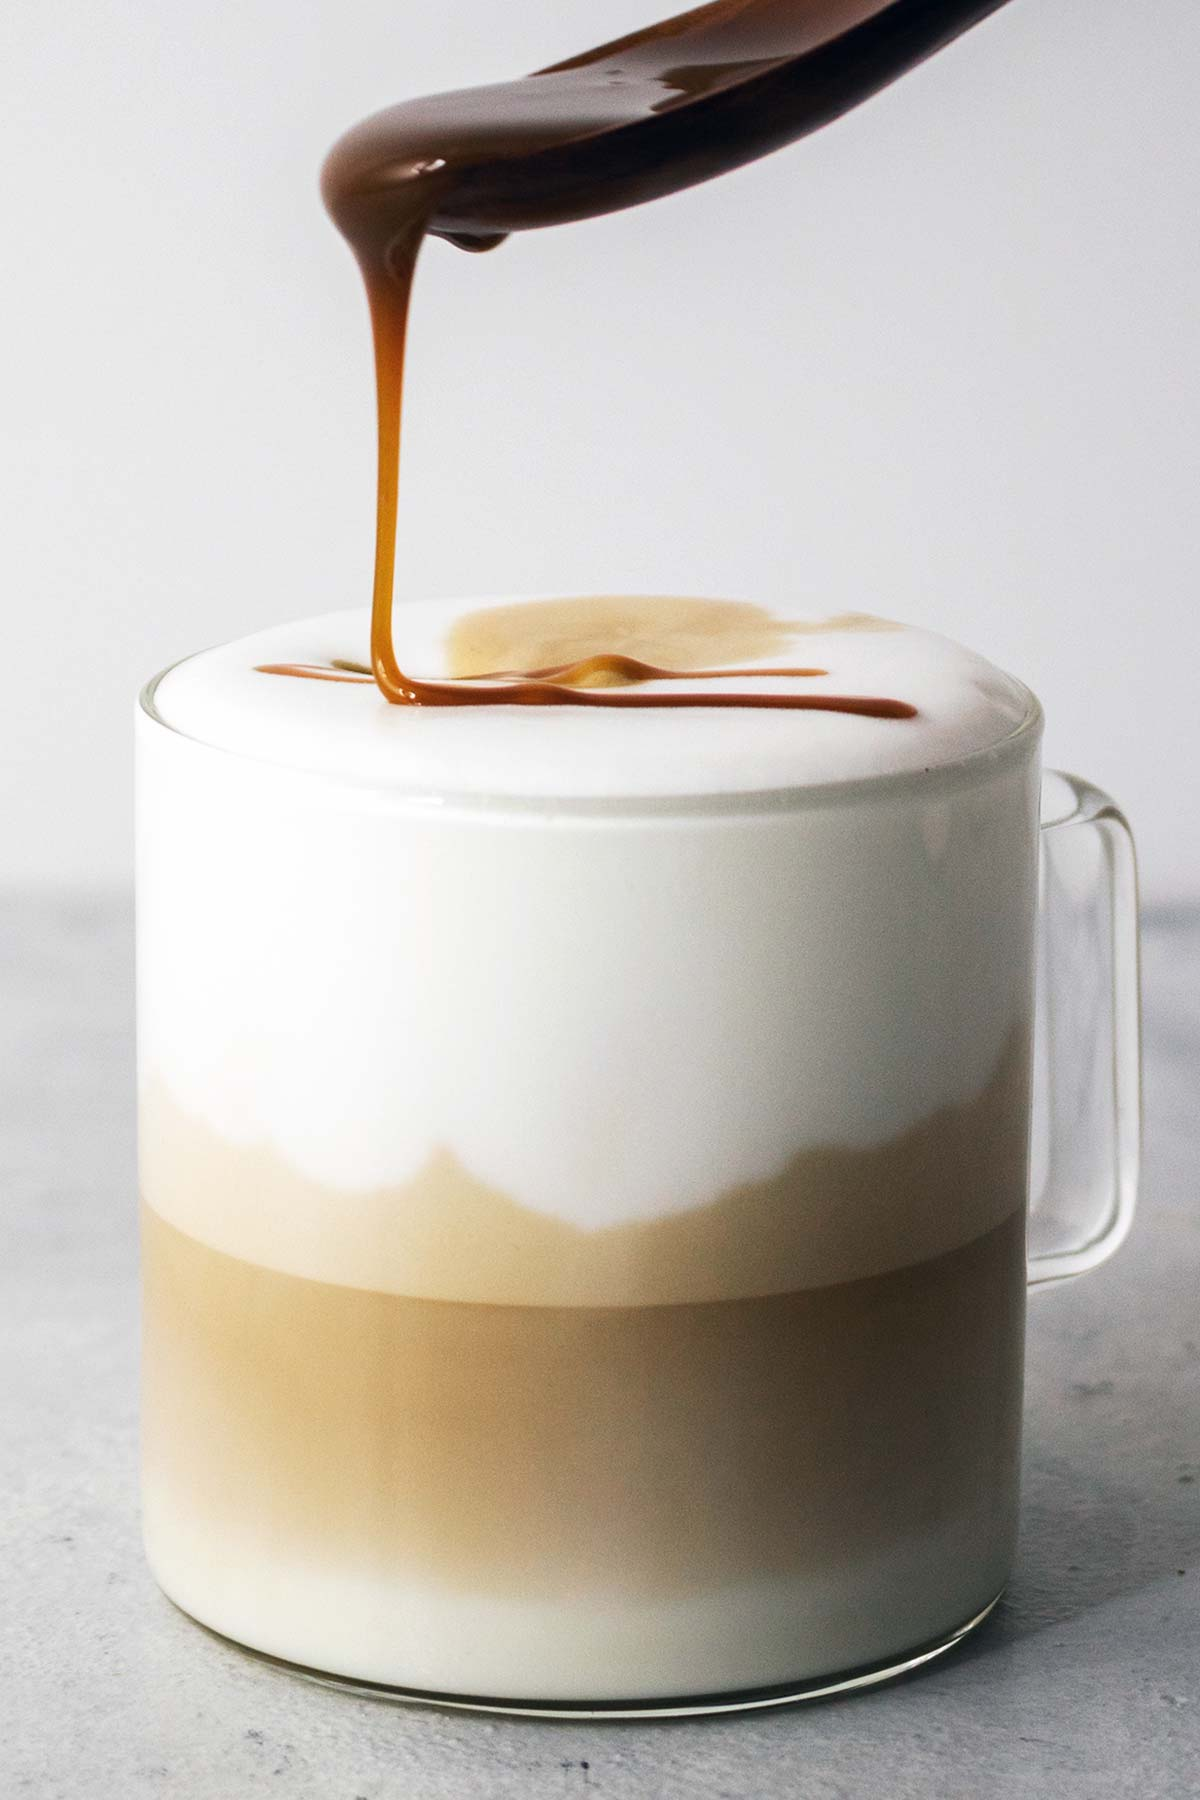 Drizzling caramel sauce on top of a Caramel Macchiato drink.